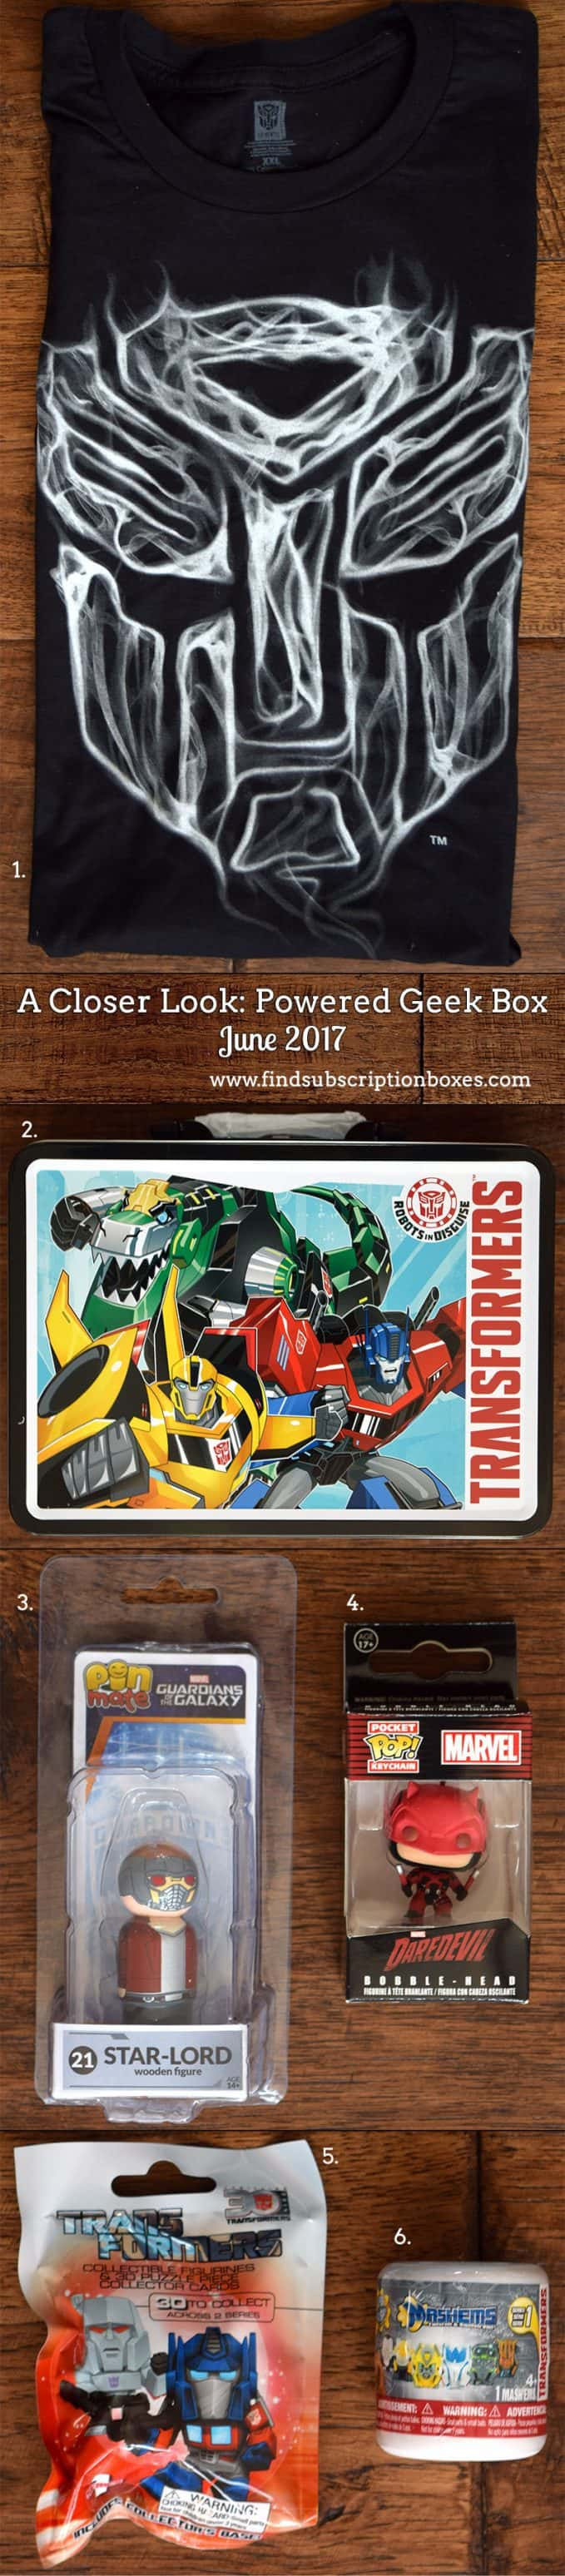 June 2017 Powered Geek Box Review - Inside the Box